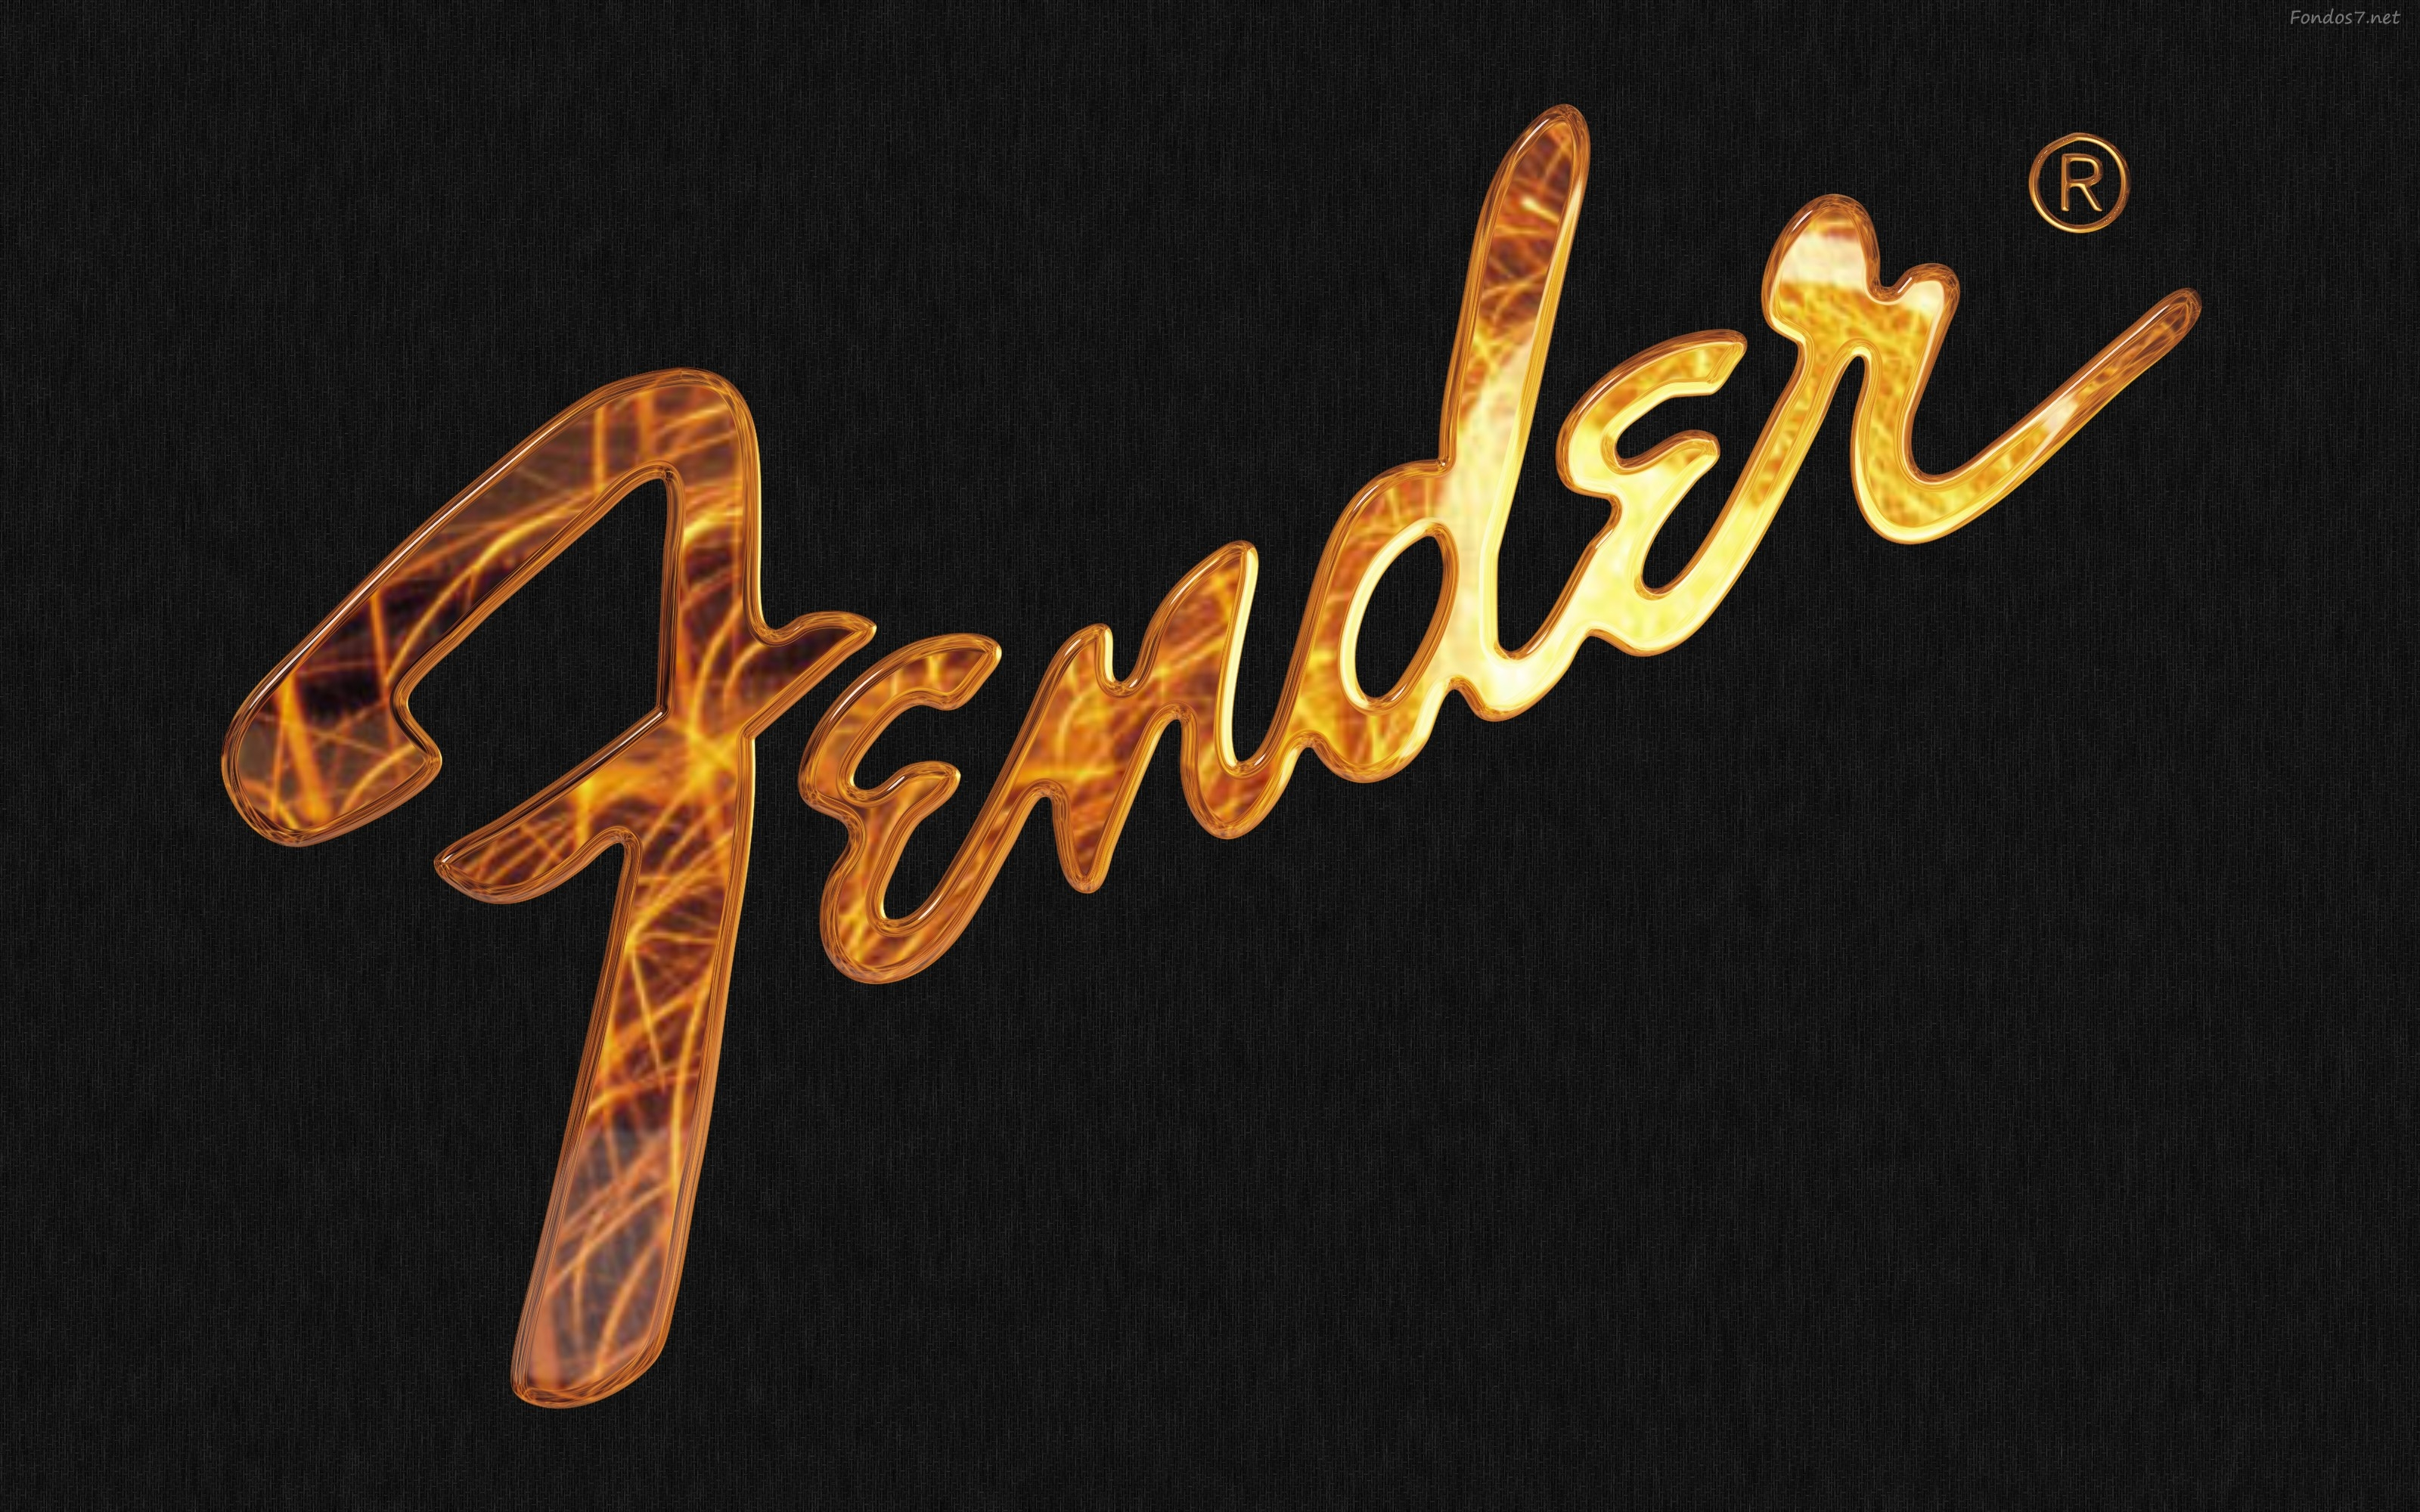 Wallpapers for Fender | Resolution 3200x2000 px